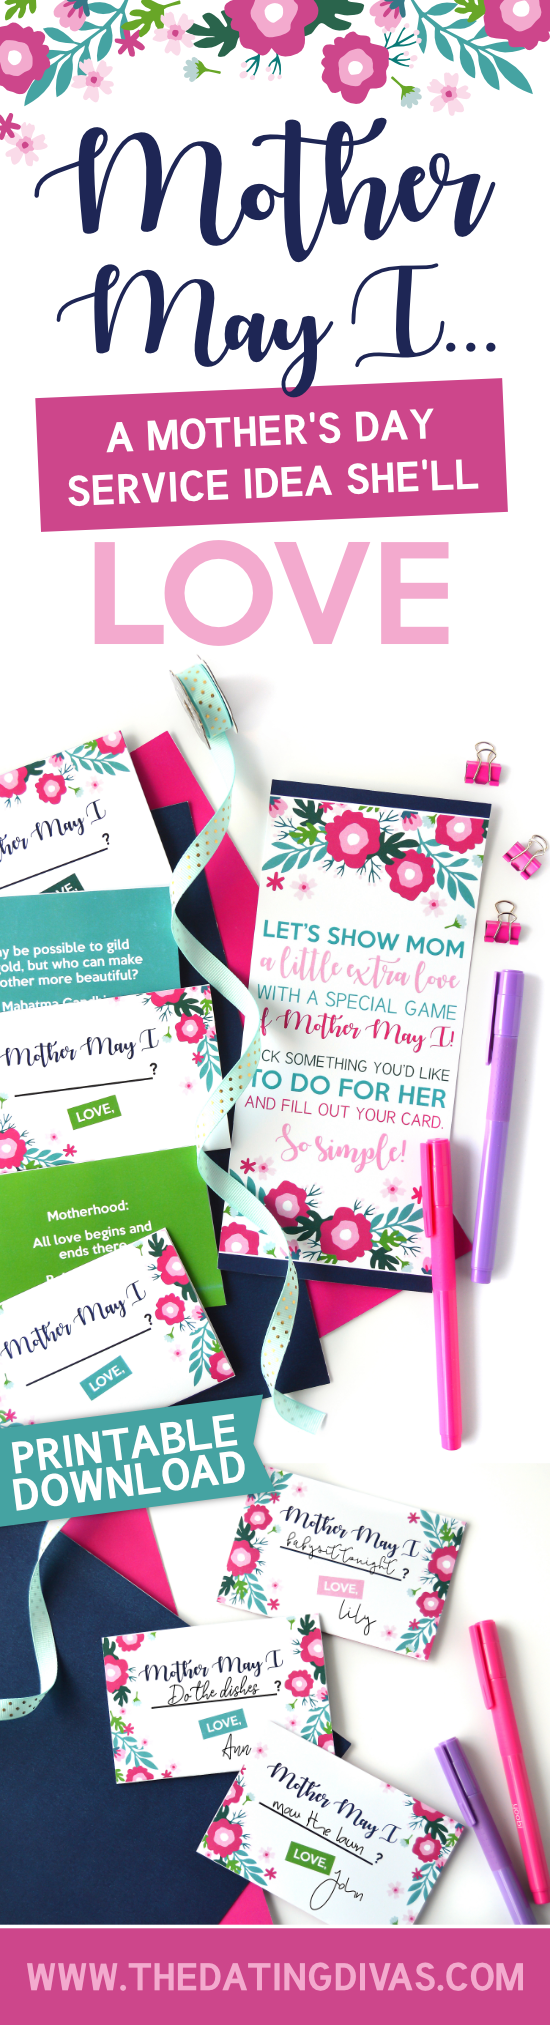 Such a great idea for what to do for Mother's Day. Plus it's super EASY and free! #whattodoformothersday #diymothersdaygifts #momquotes